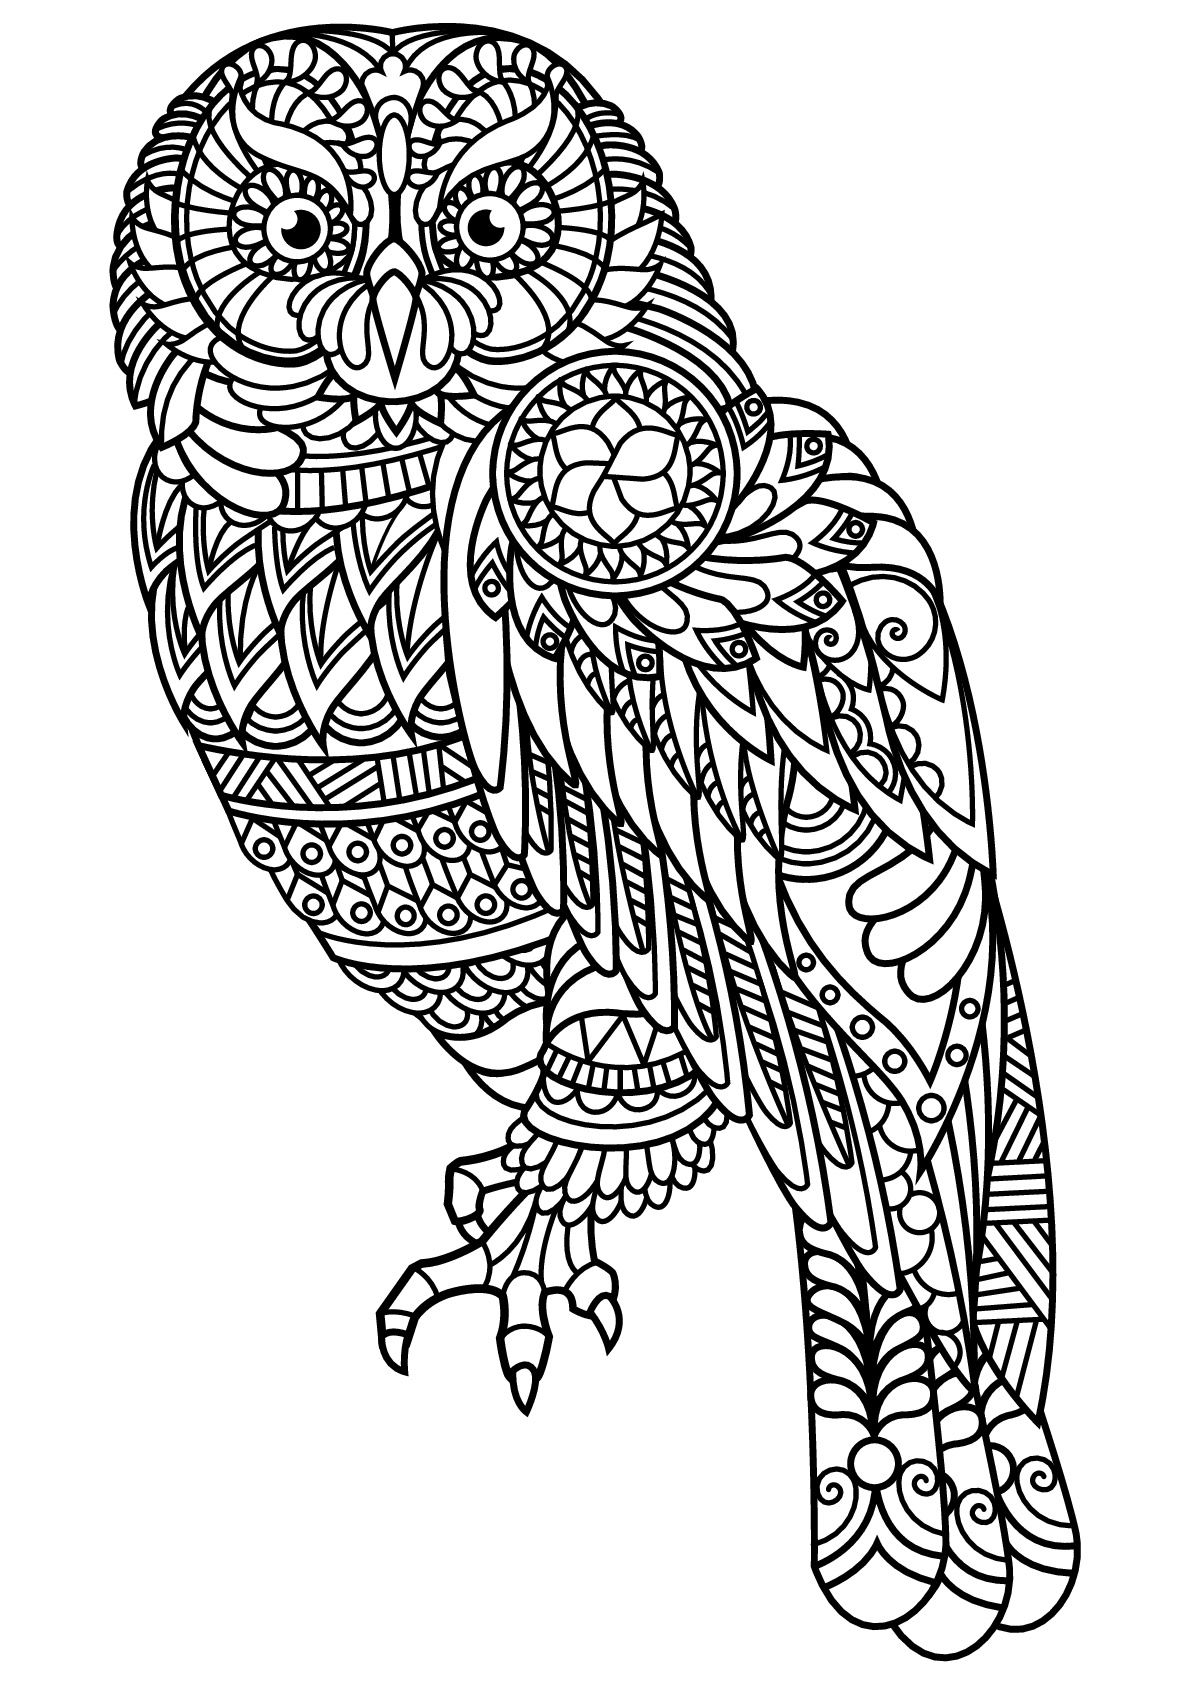 simple owls coloring page to print and color for free